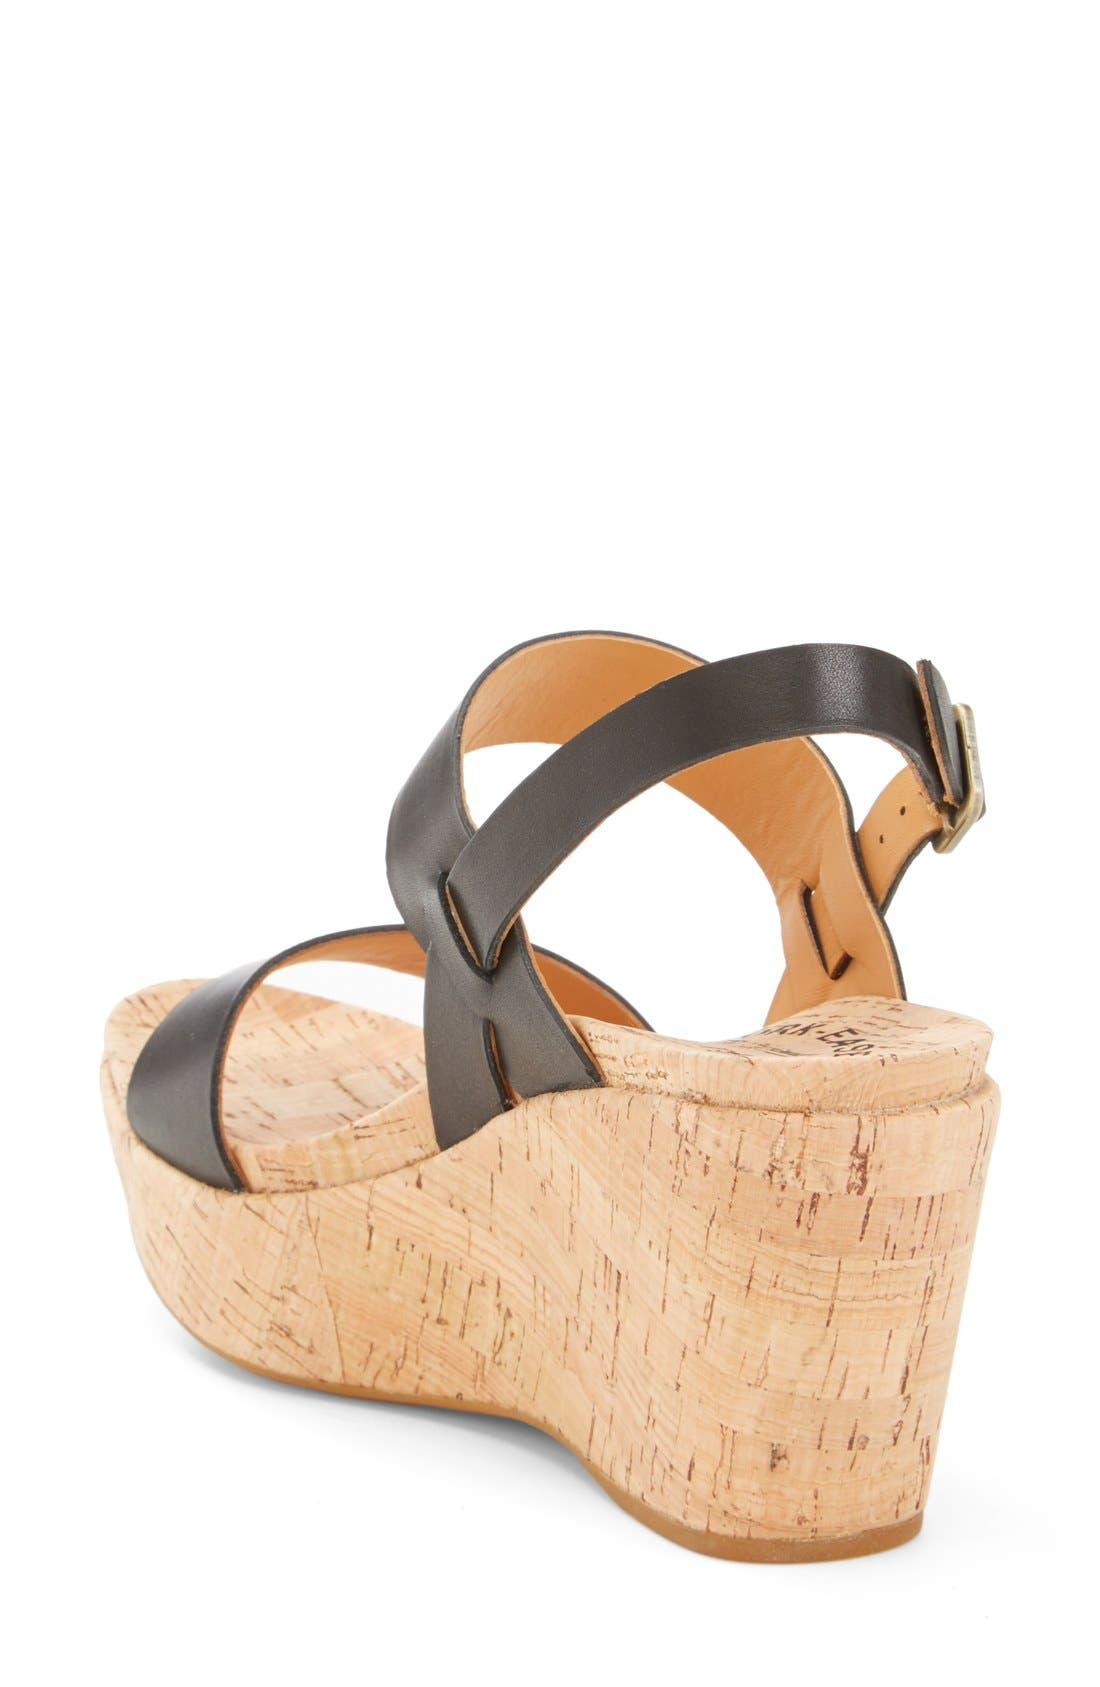 'Austin' Slingback Wedge Sandal,                             Alternate thumbnail 2, color,                             001